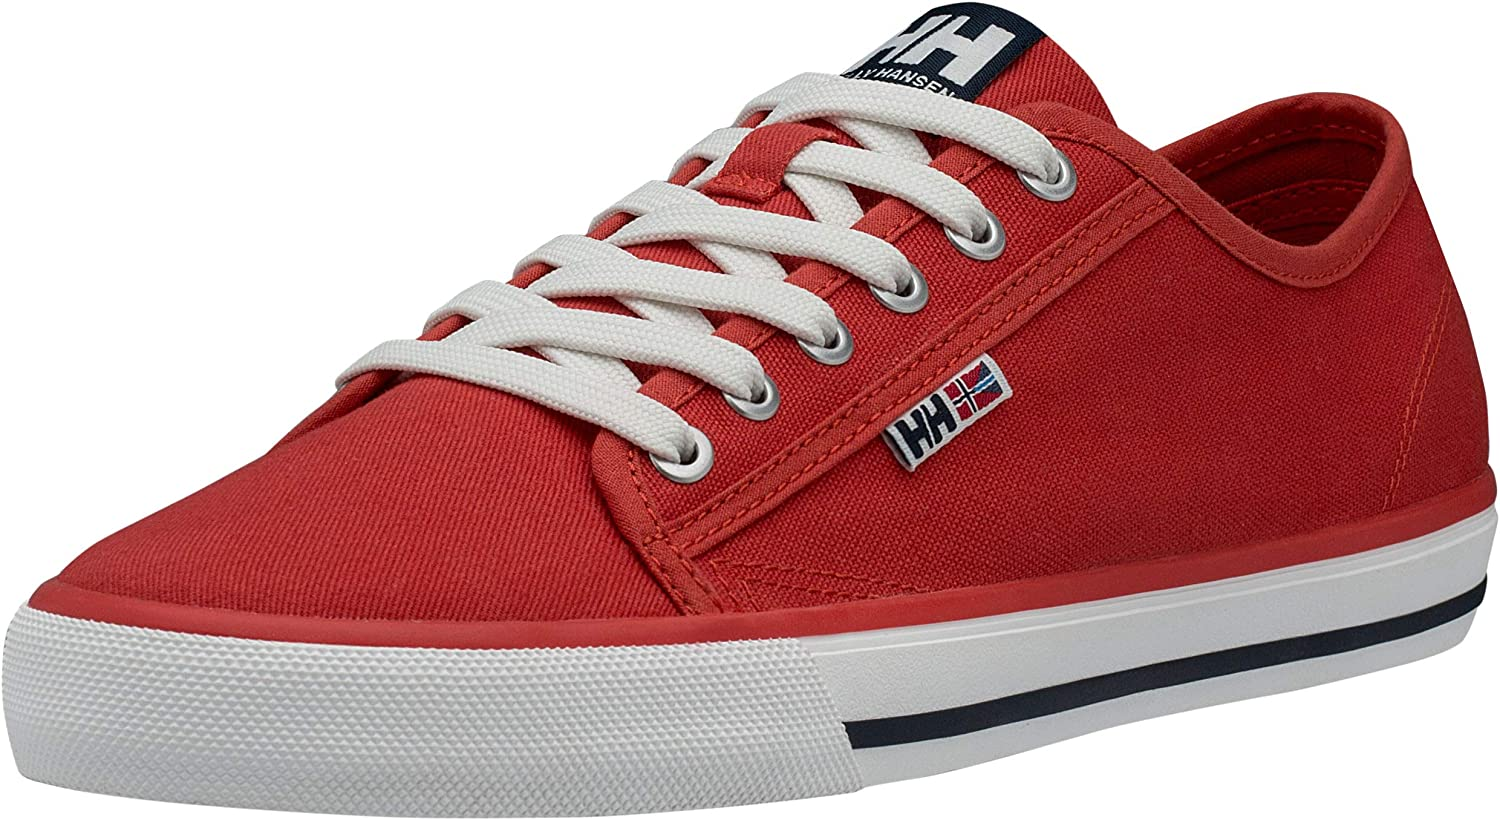 Helly-Hansen Price reduction Mens Fjord Low-Cut Deck All items free shipping V2 Canvas Shoe